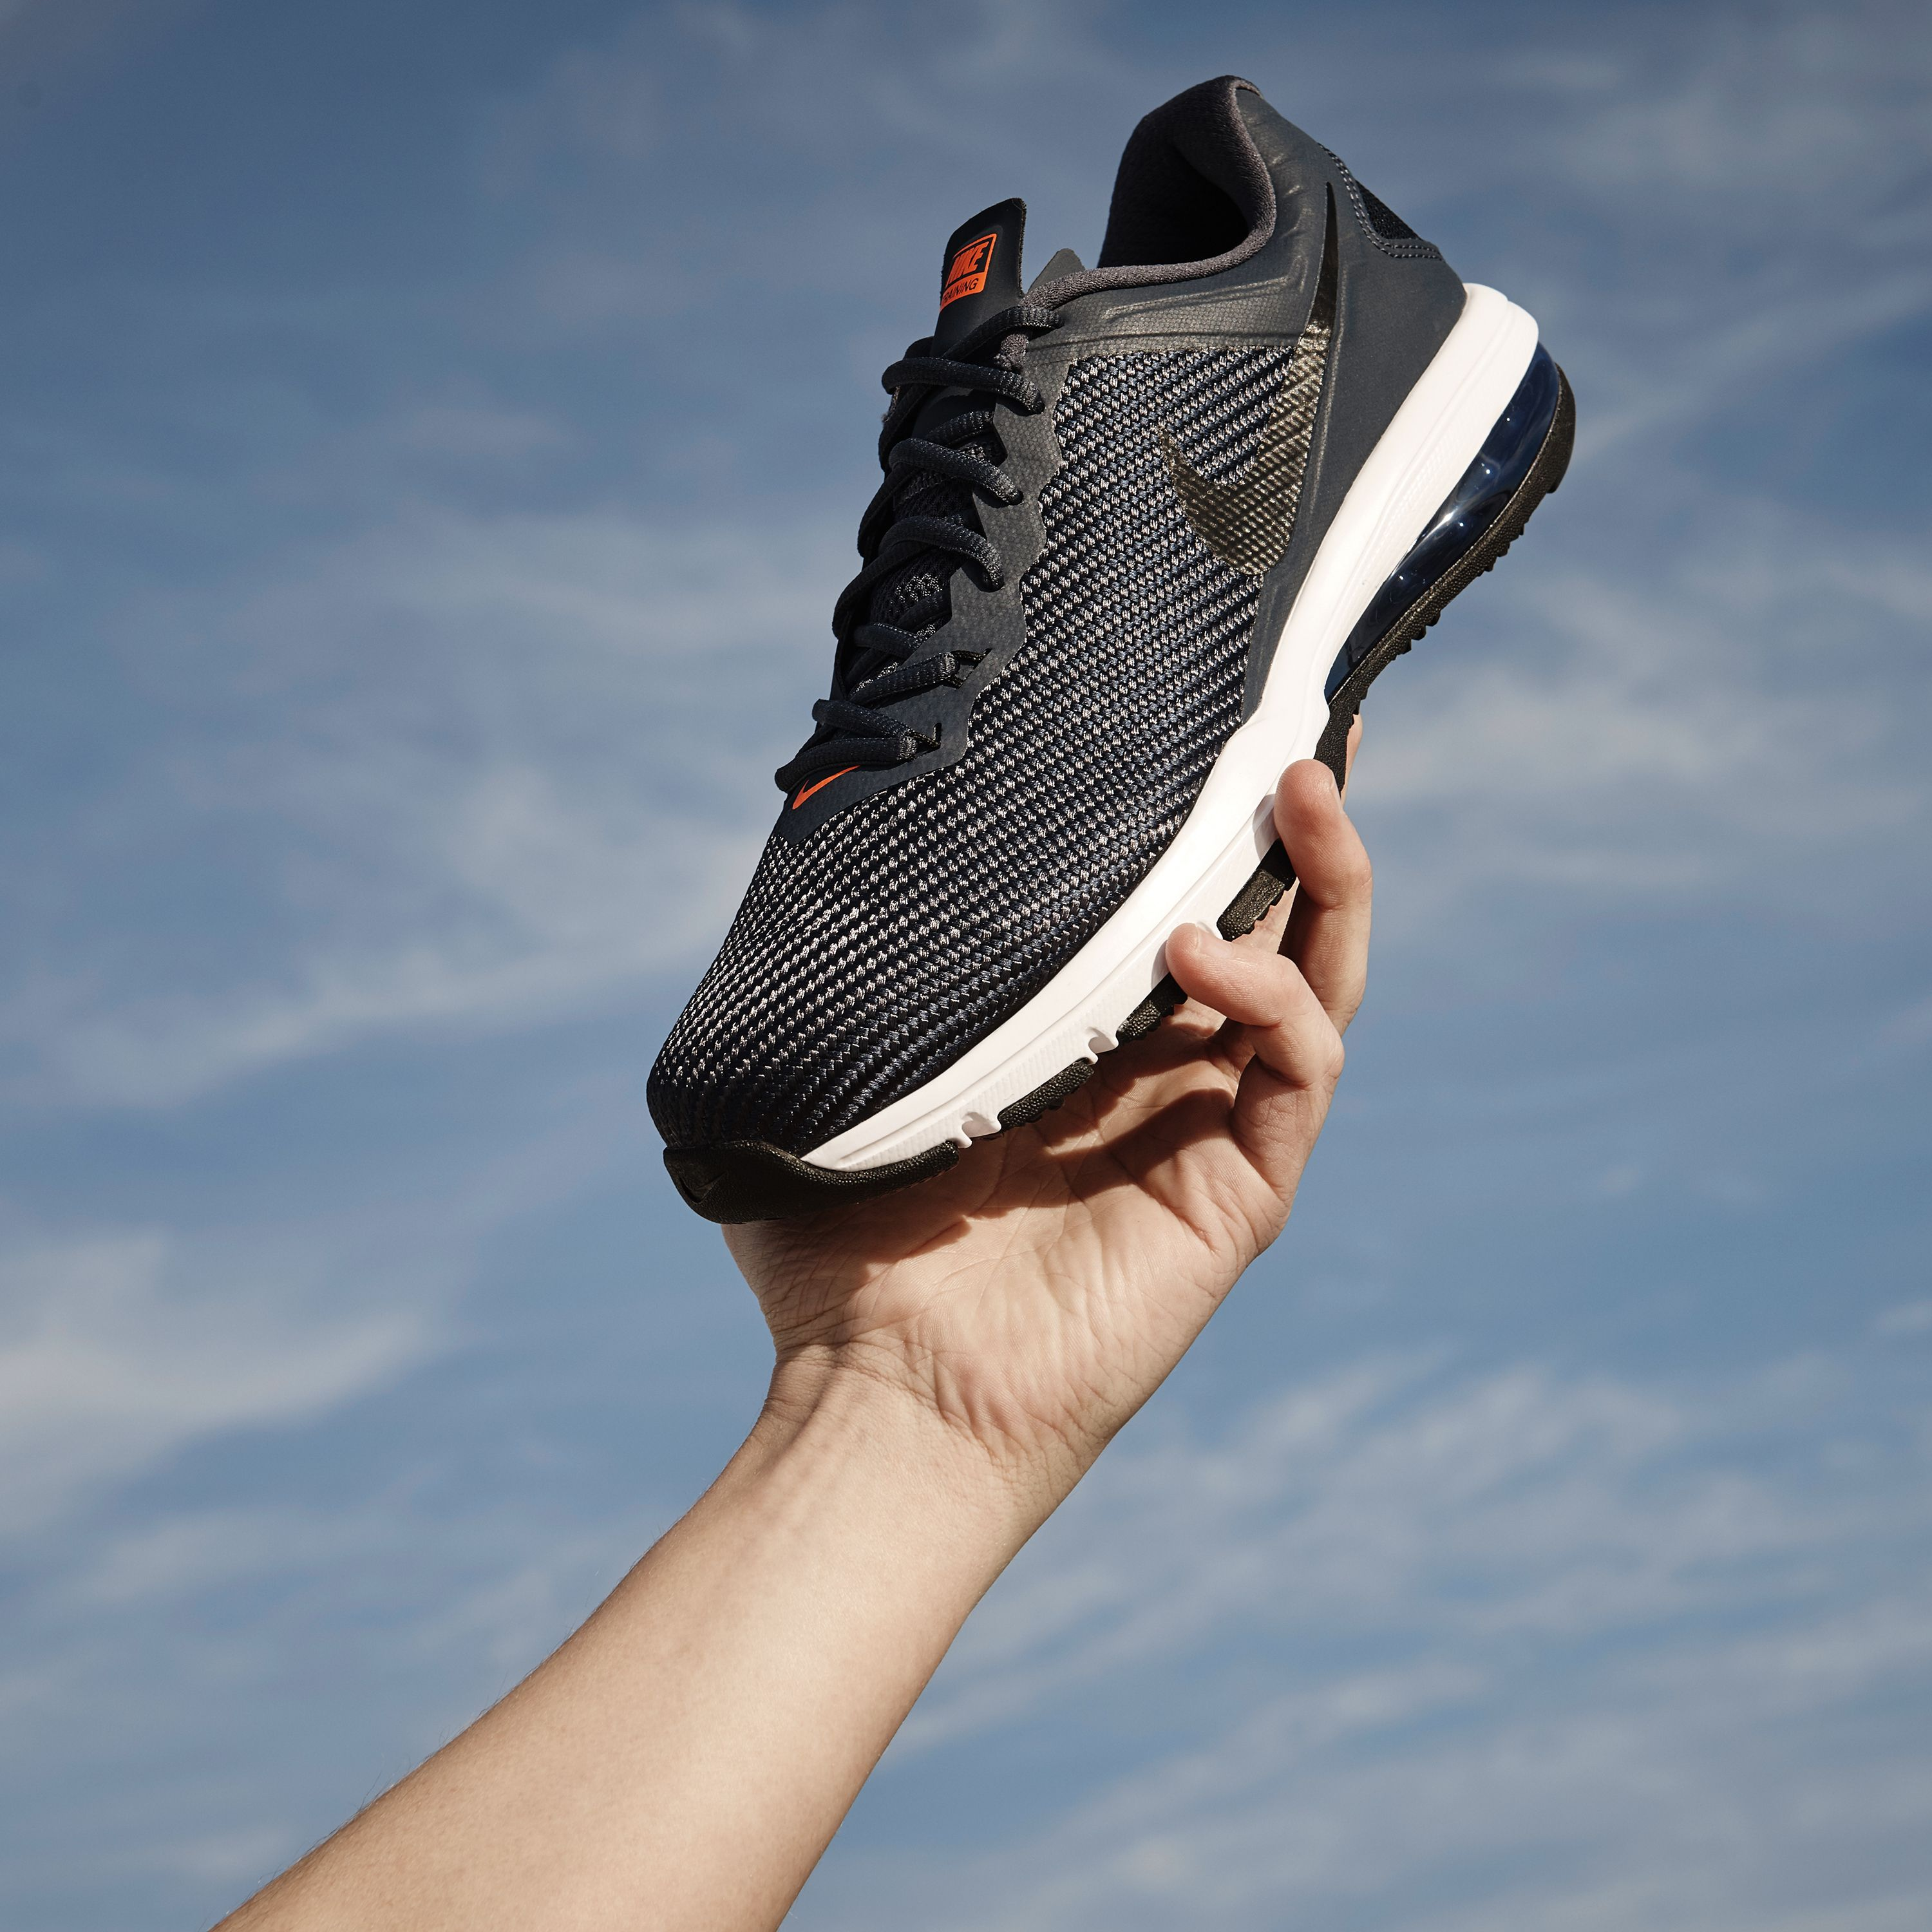 lowest price 86a3b 5efa1 For a trainer that will give you a comfortable journey from start to finish  look no further than the Nike Air Max Full Ride.